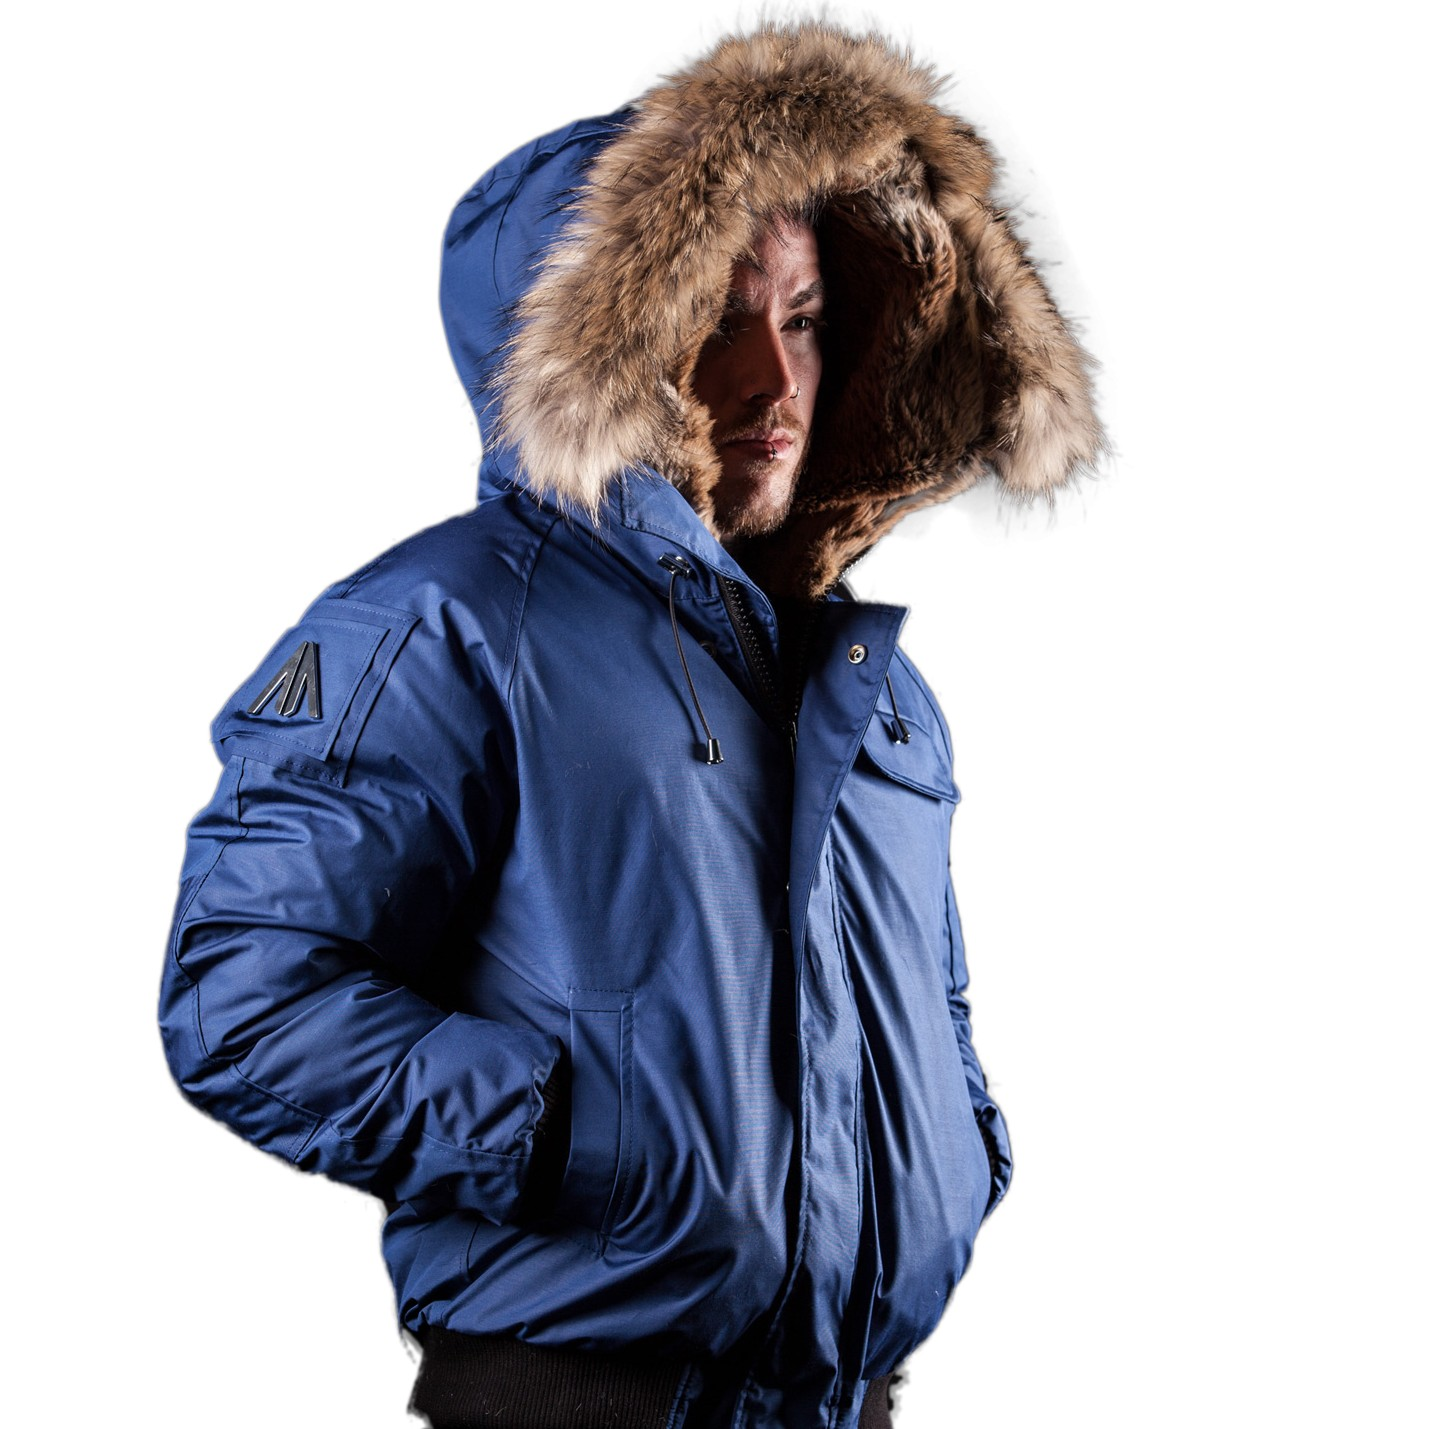 848b7a283a3 Mens Parkas   Bomber Jackets by Arctic North - clothingmonster.com